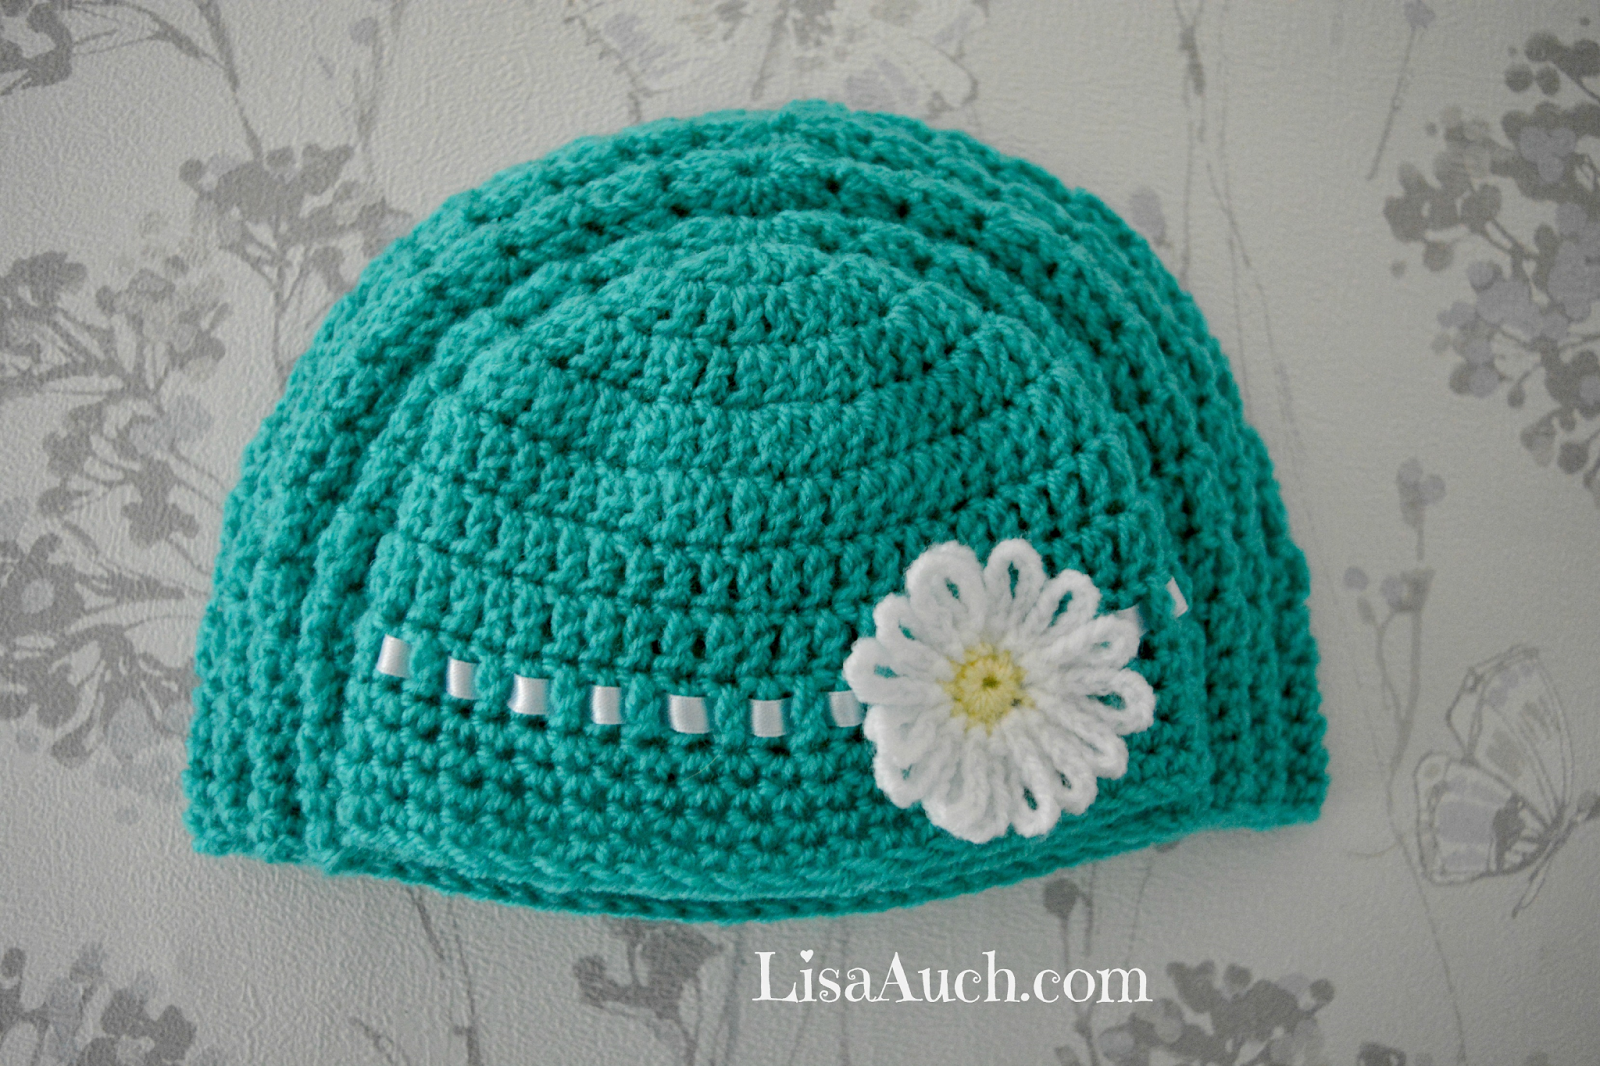 Crochet Hat Pattern For 8 Month Old : Free Crochet Patterns and Designs by LisaAuch: Double ...